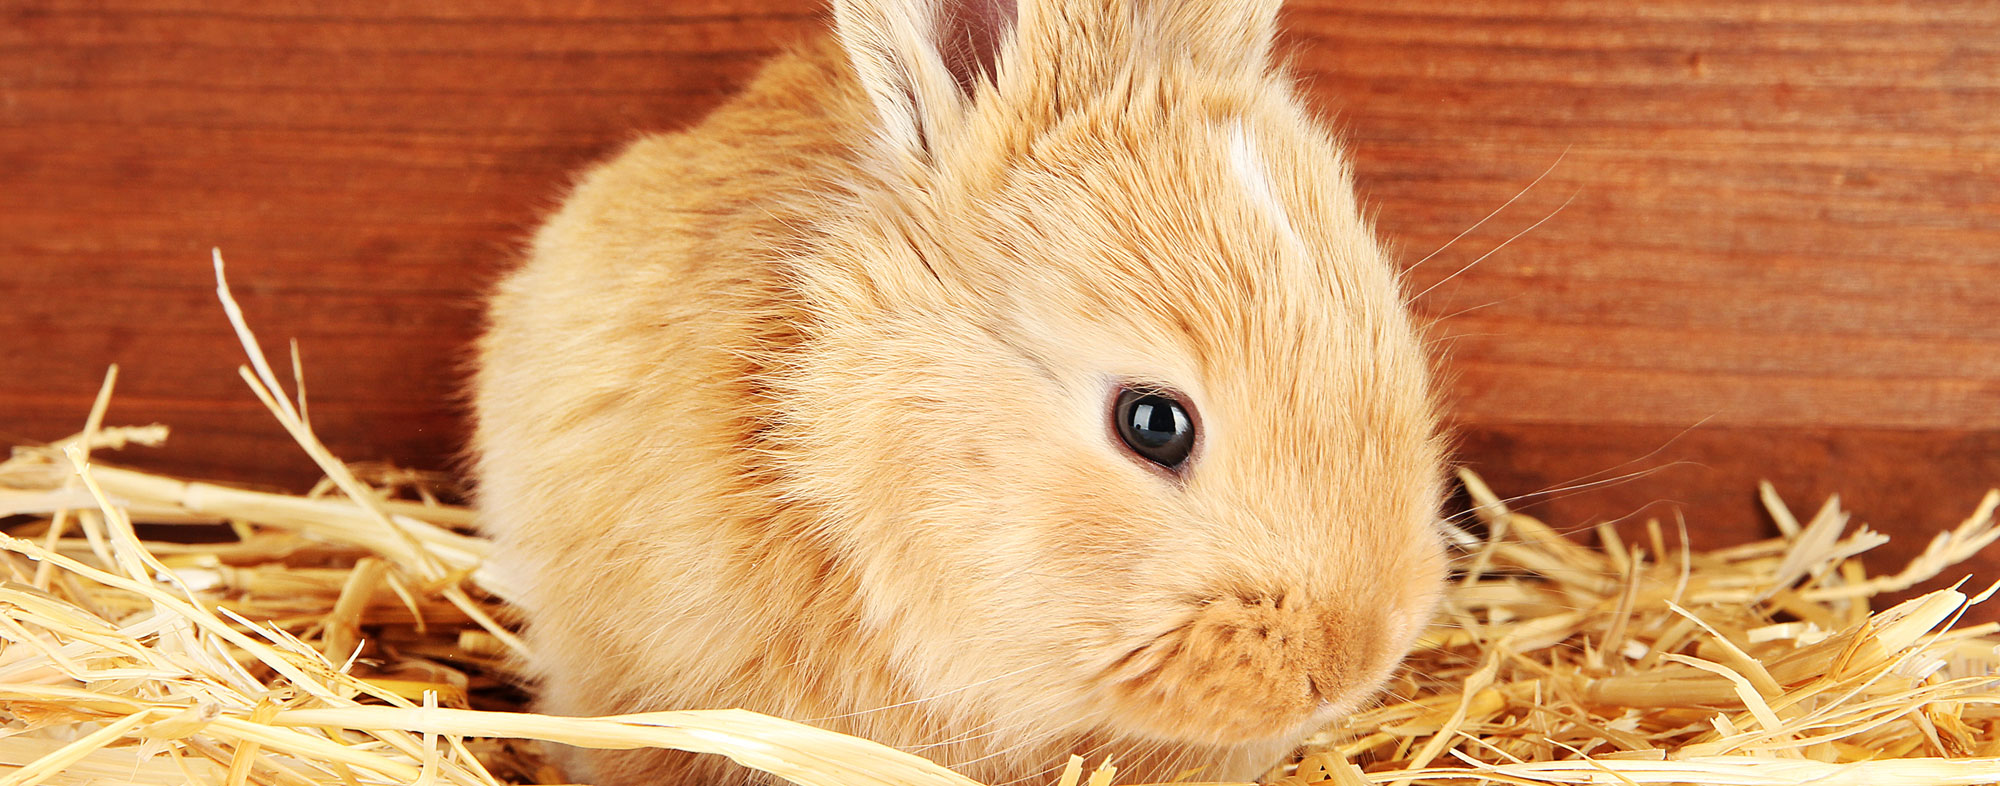 A supply of fresh produce is what you should feed a rabbit